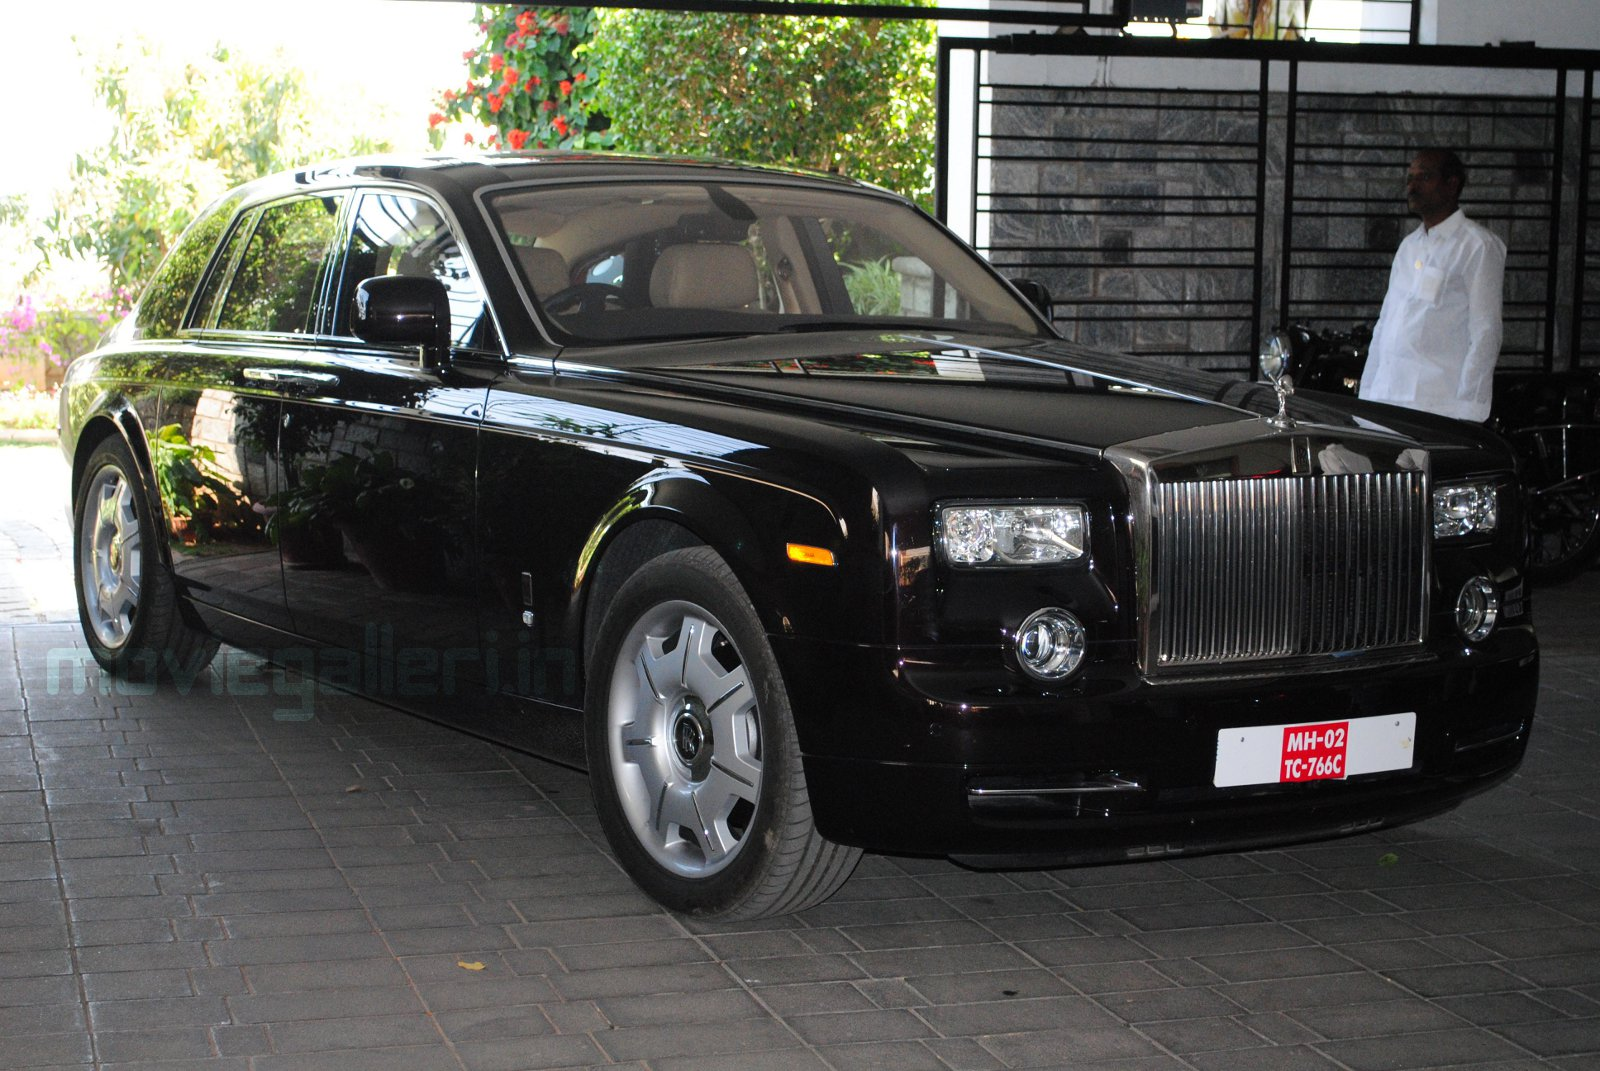 Chiranjeevi New Rolls Royce Car Pics Rolls Royce Pantom Car New